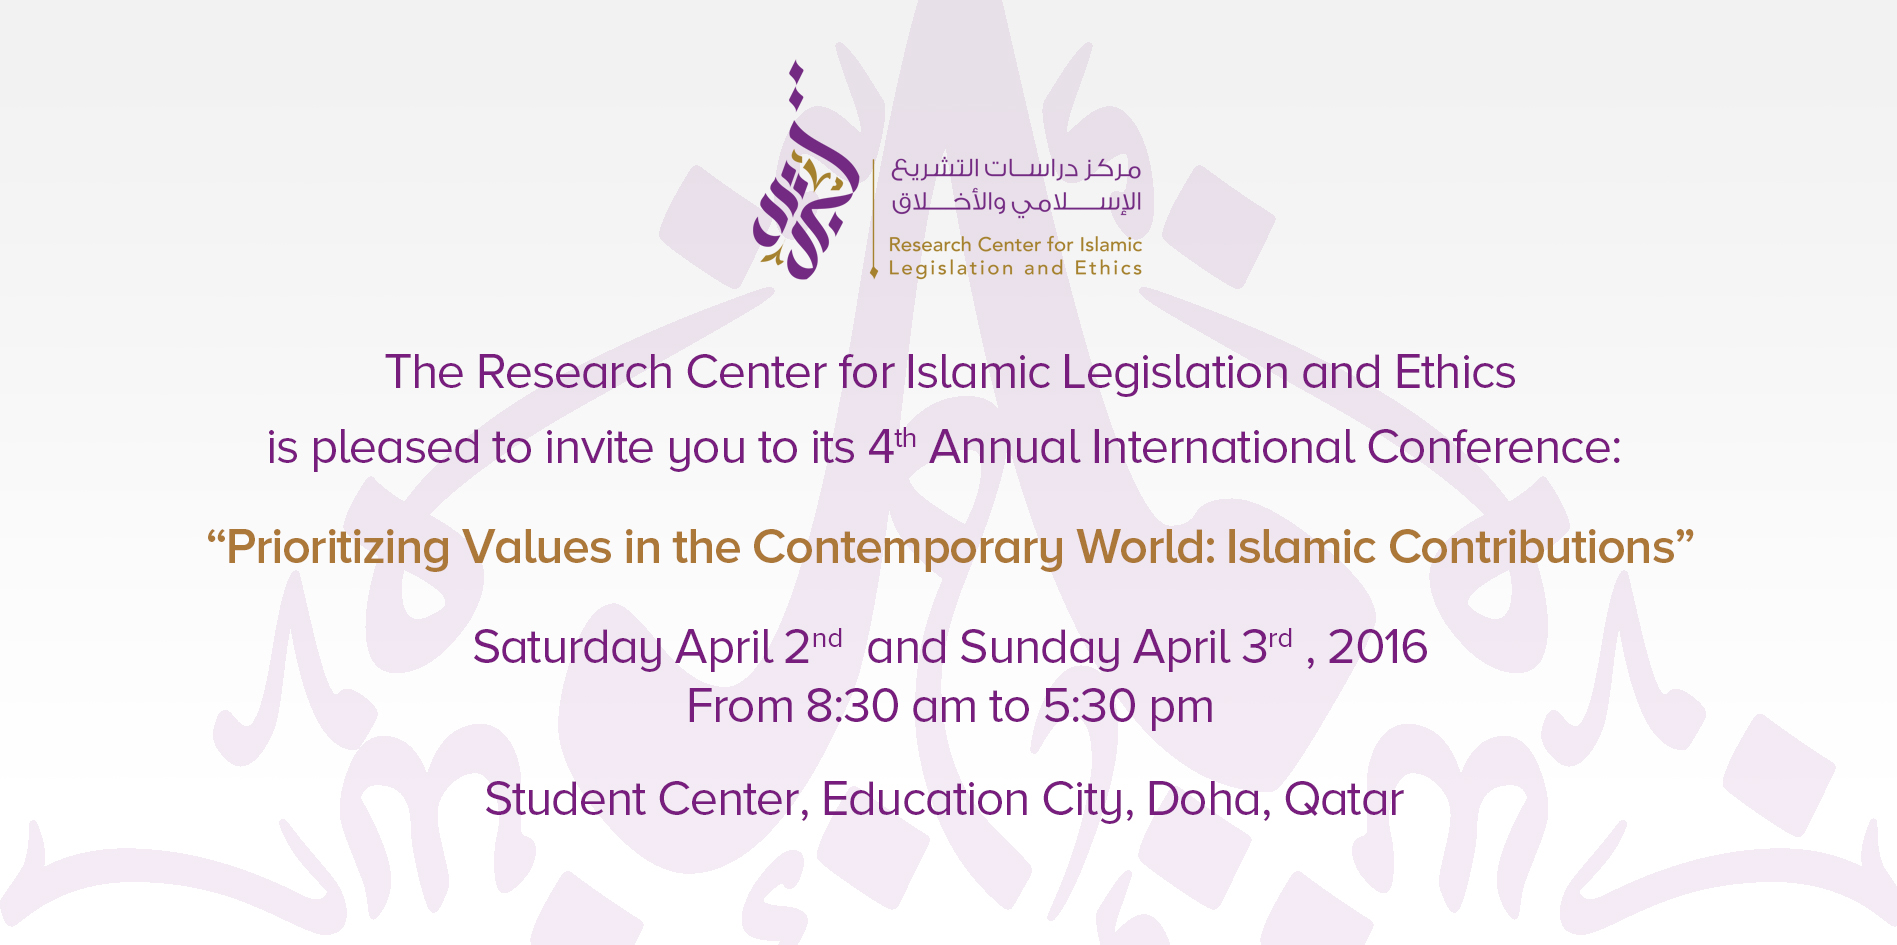 #CILE2016 Save the Date: CILE 4th Annual International Conference